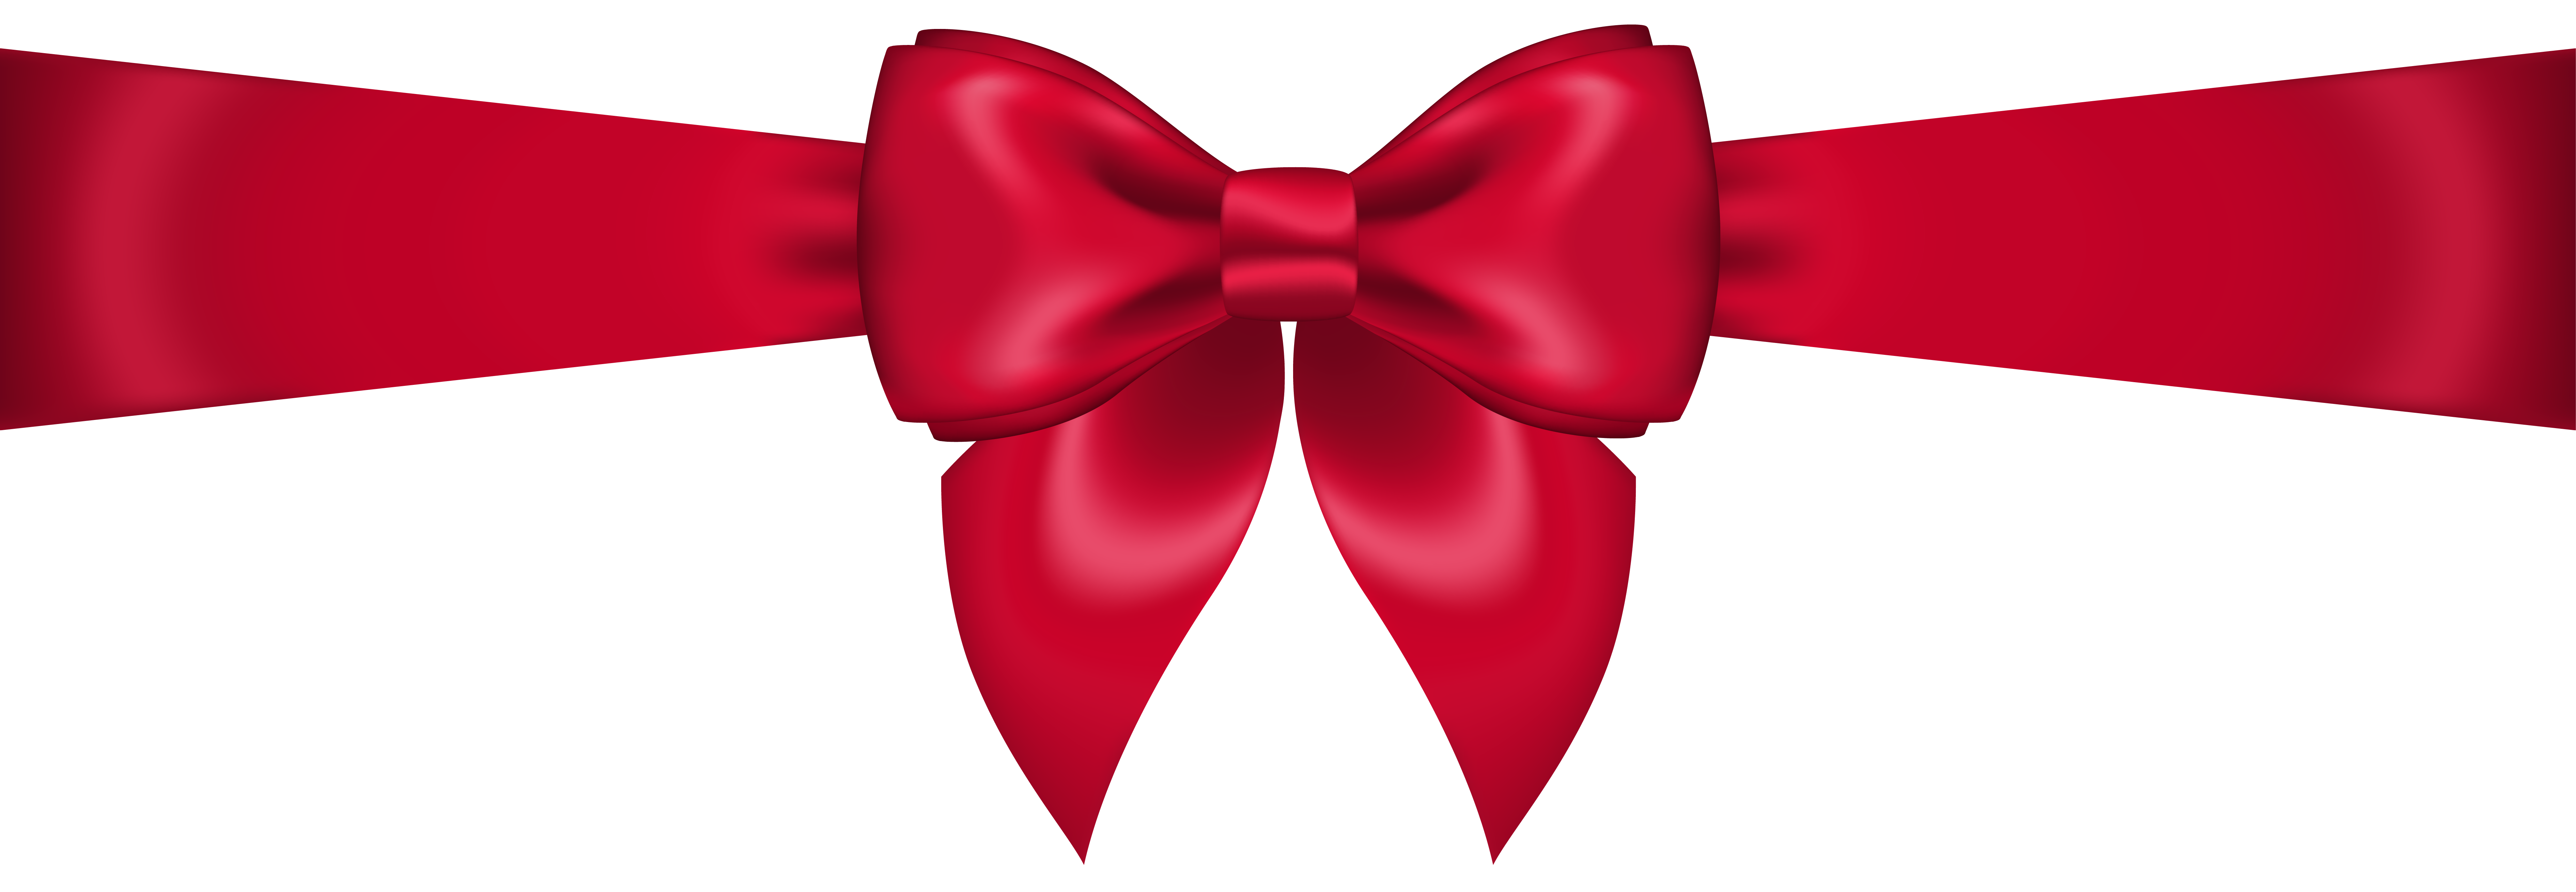 Bow png clip art. Transparent bg red clip royalty free download